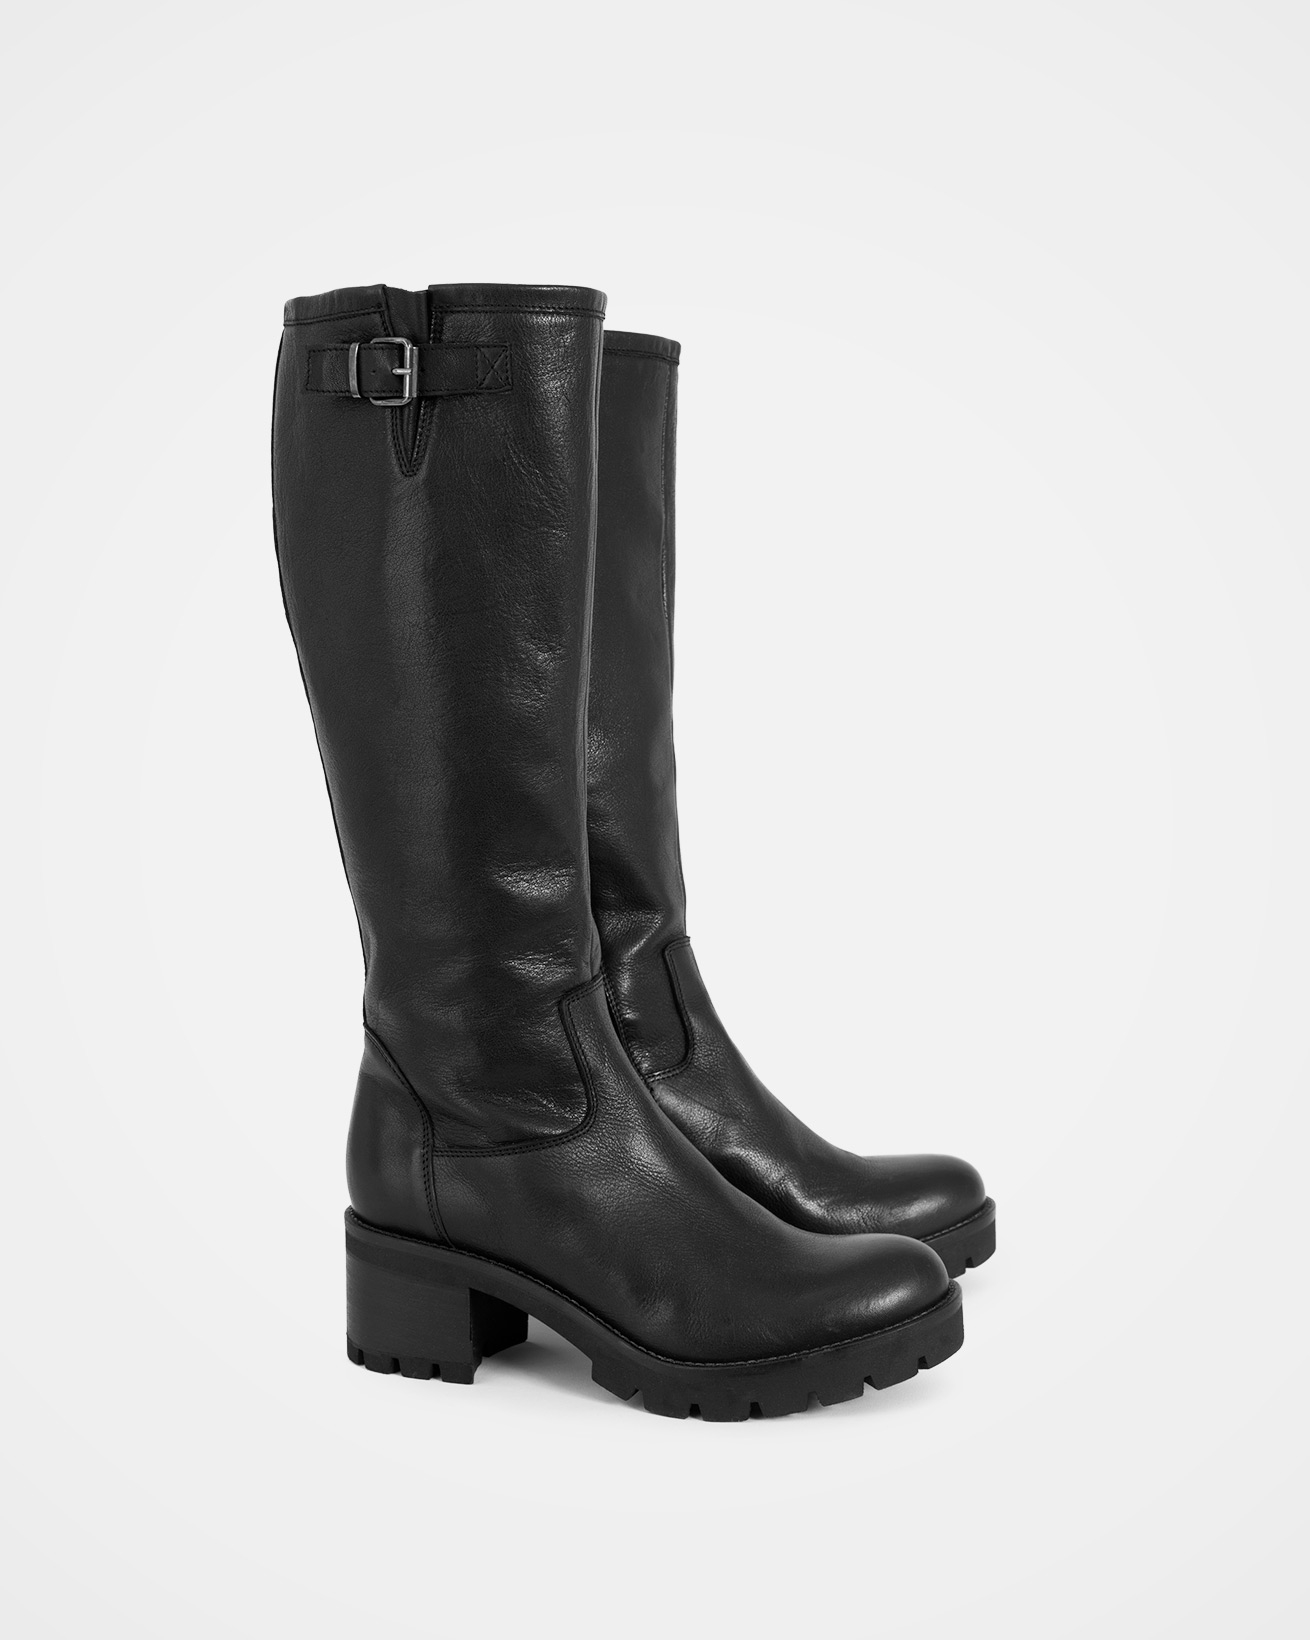 Biker Knee Boots - Size 38 - Black - 1197